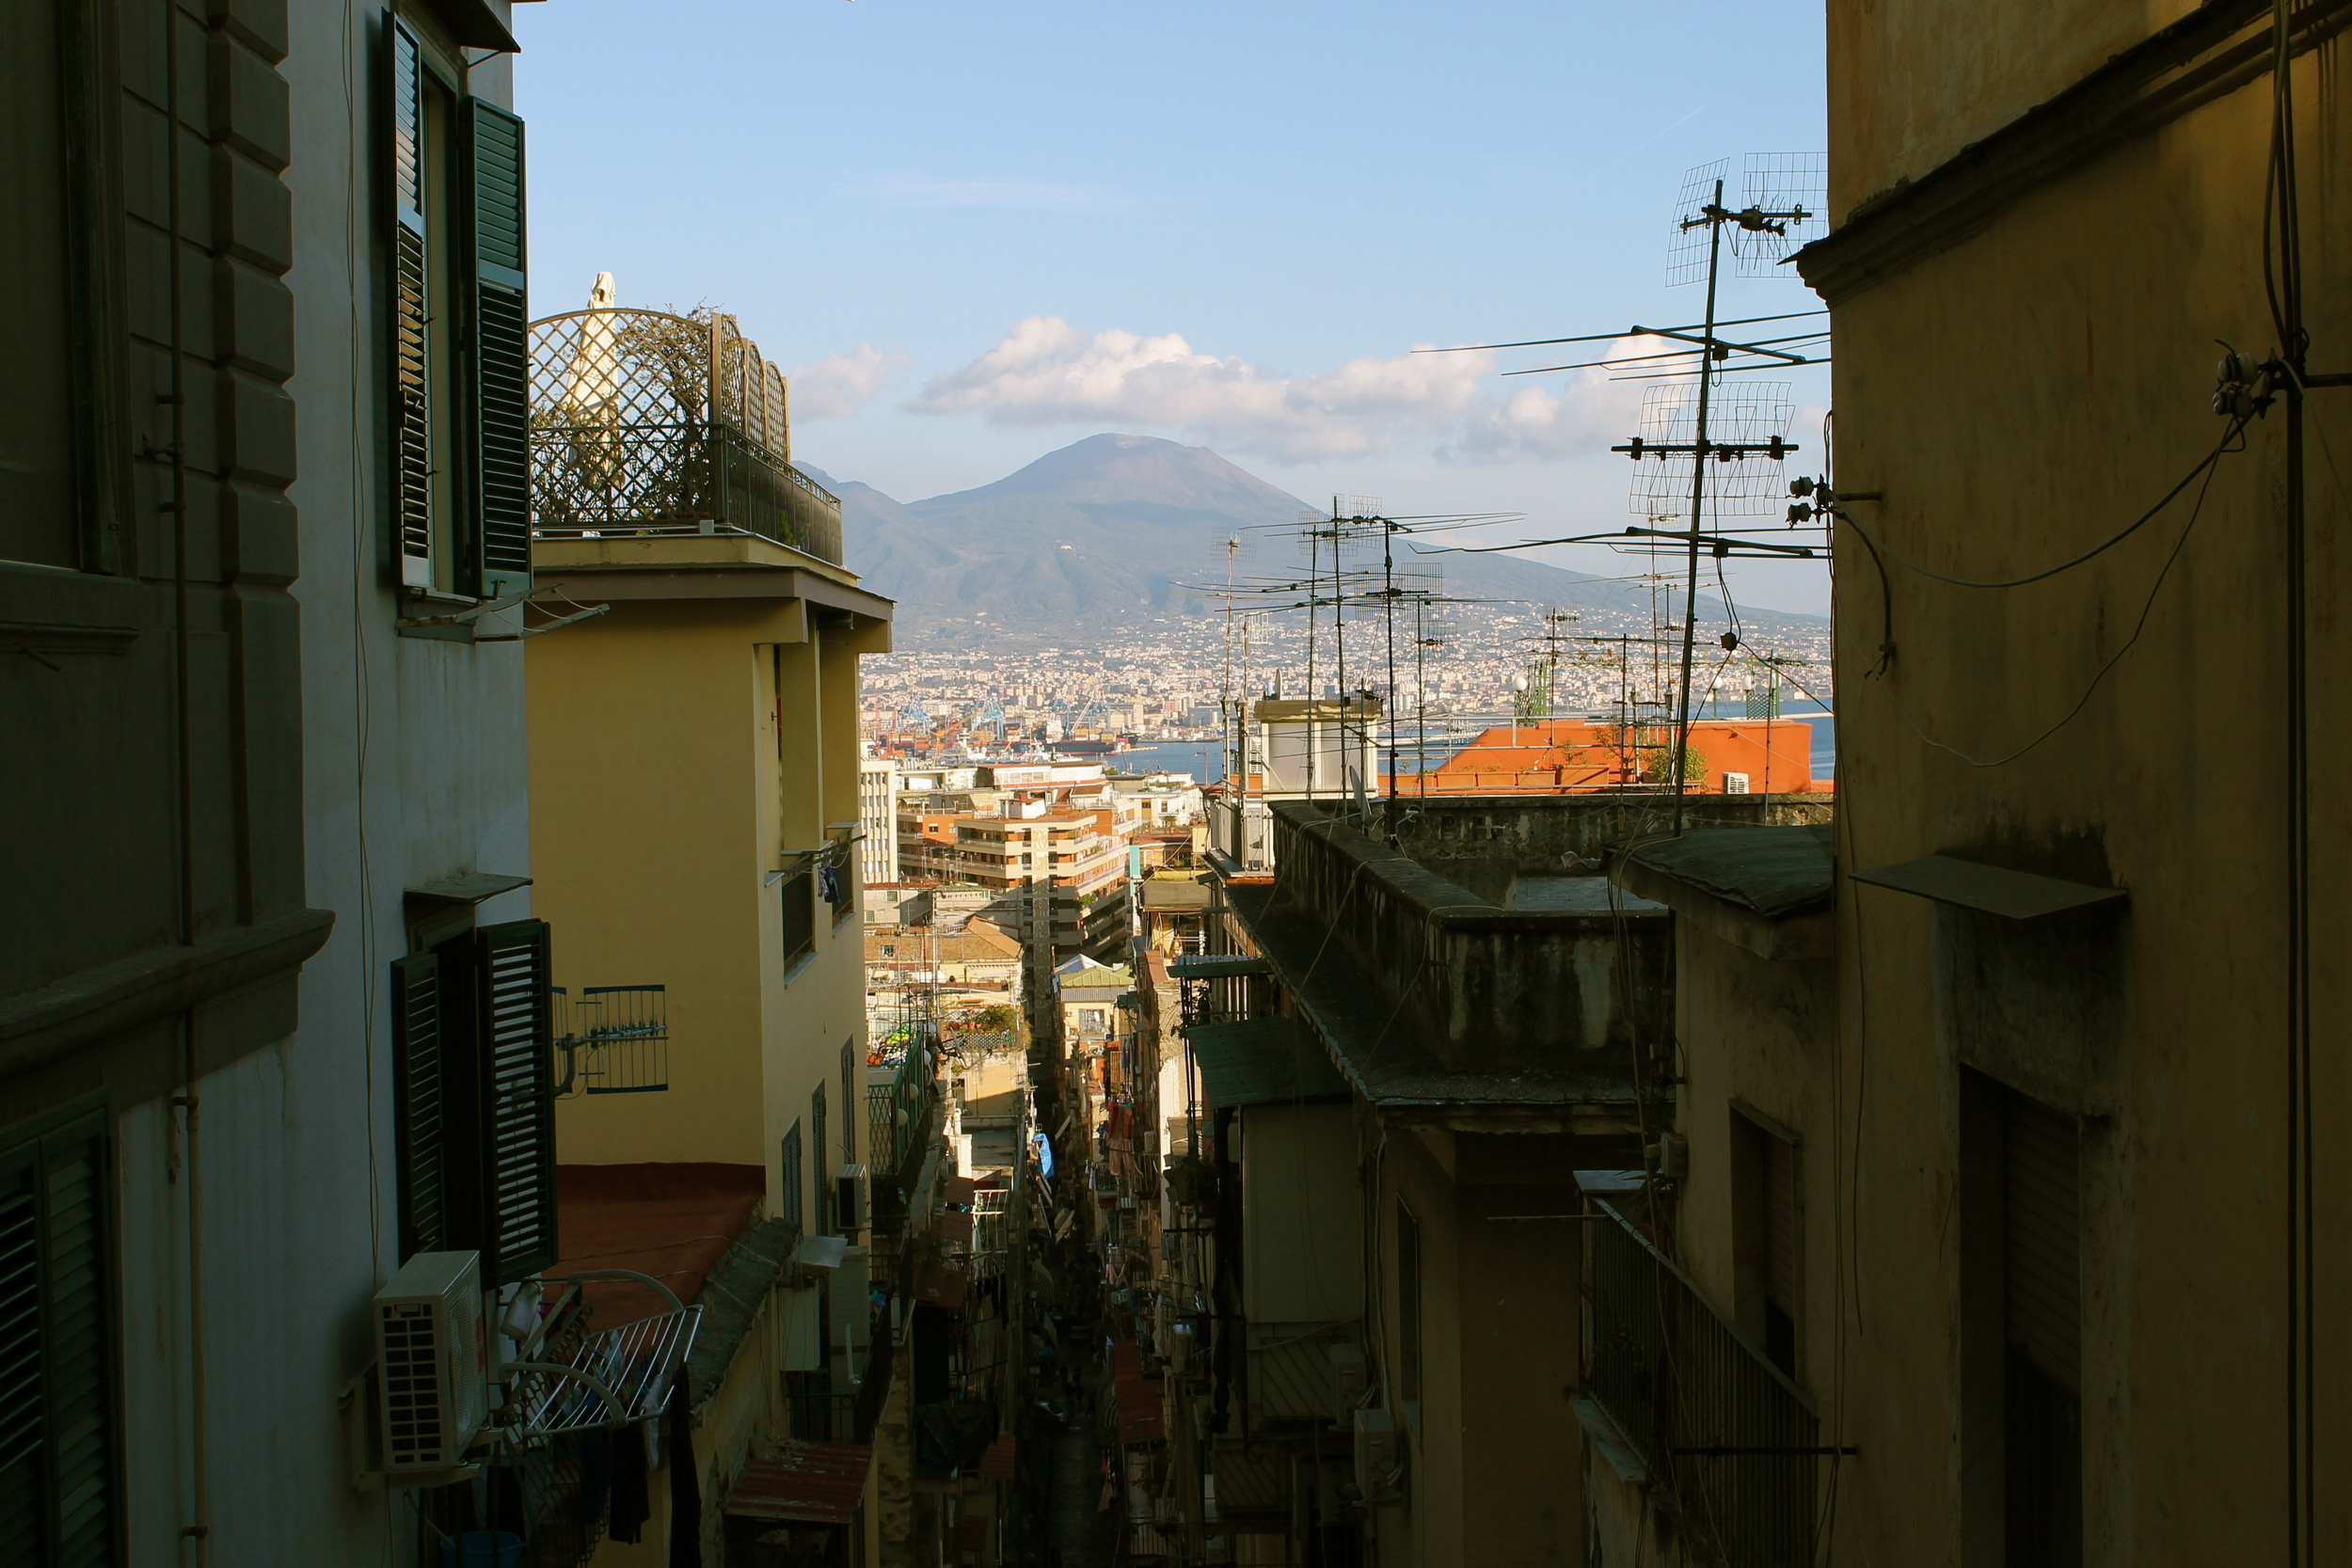 Here's Vesuvius from the city of Naples (for perspective).